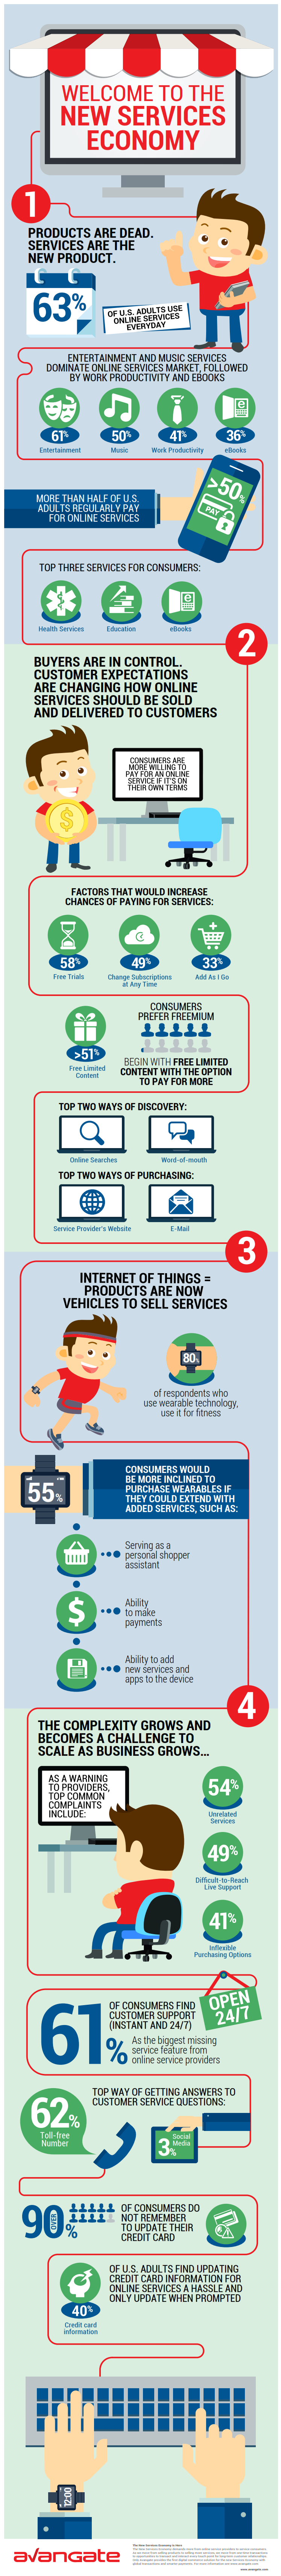 NewServicesEconomyInfographic[2]_001